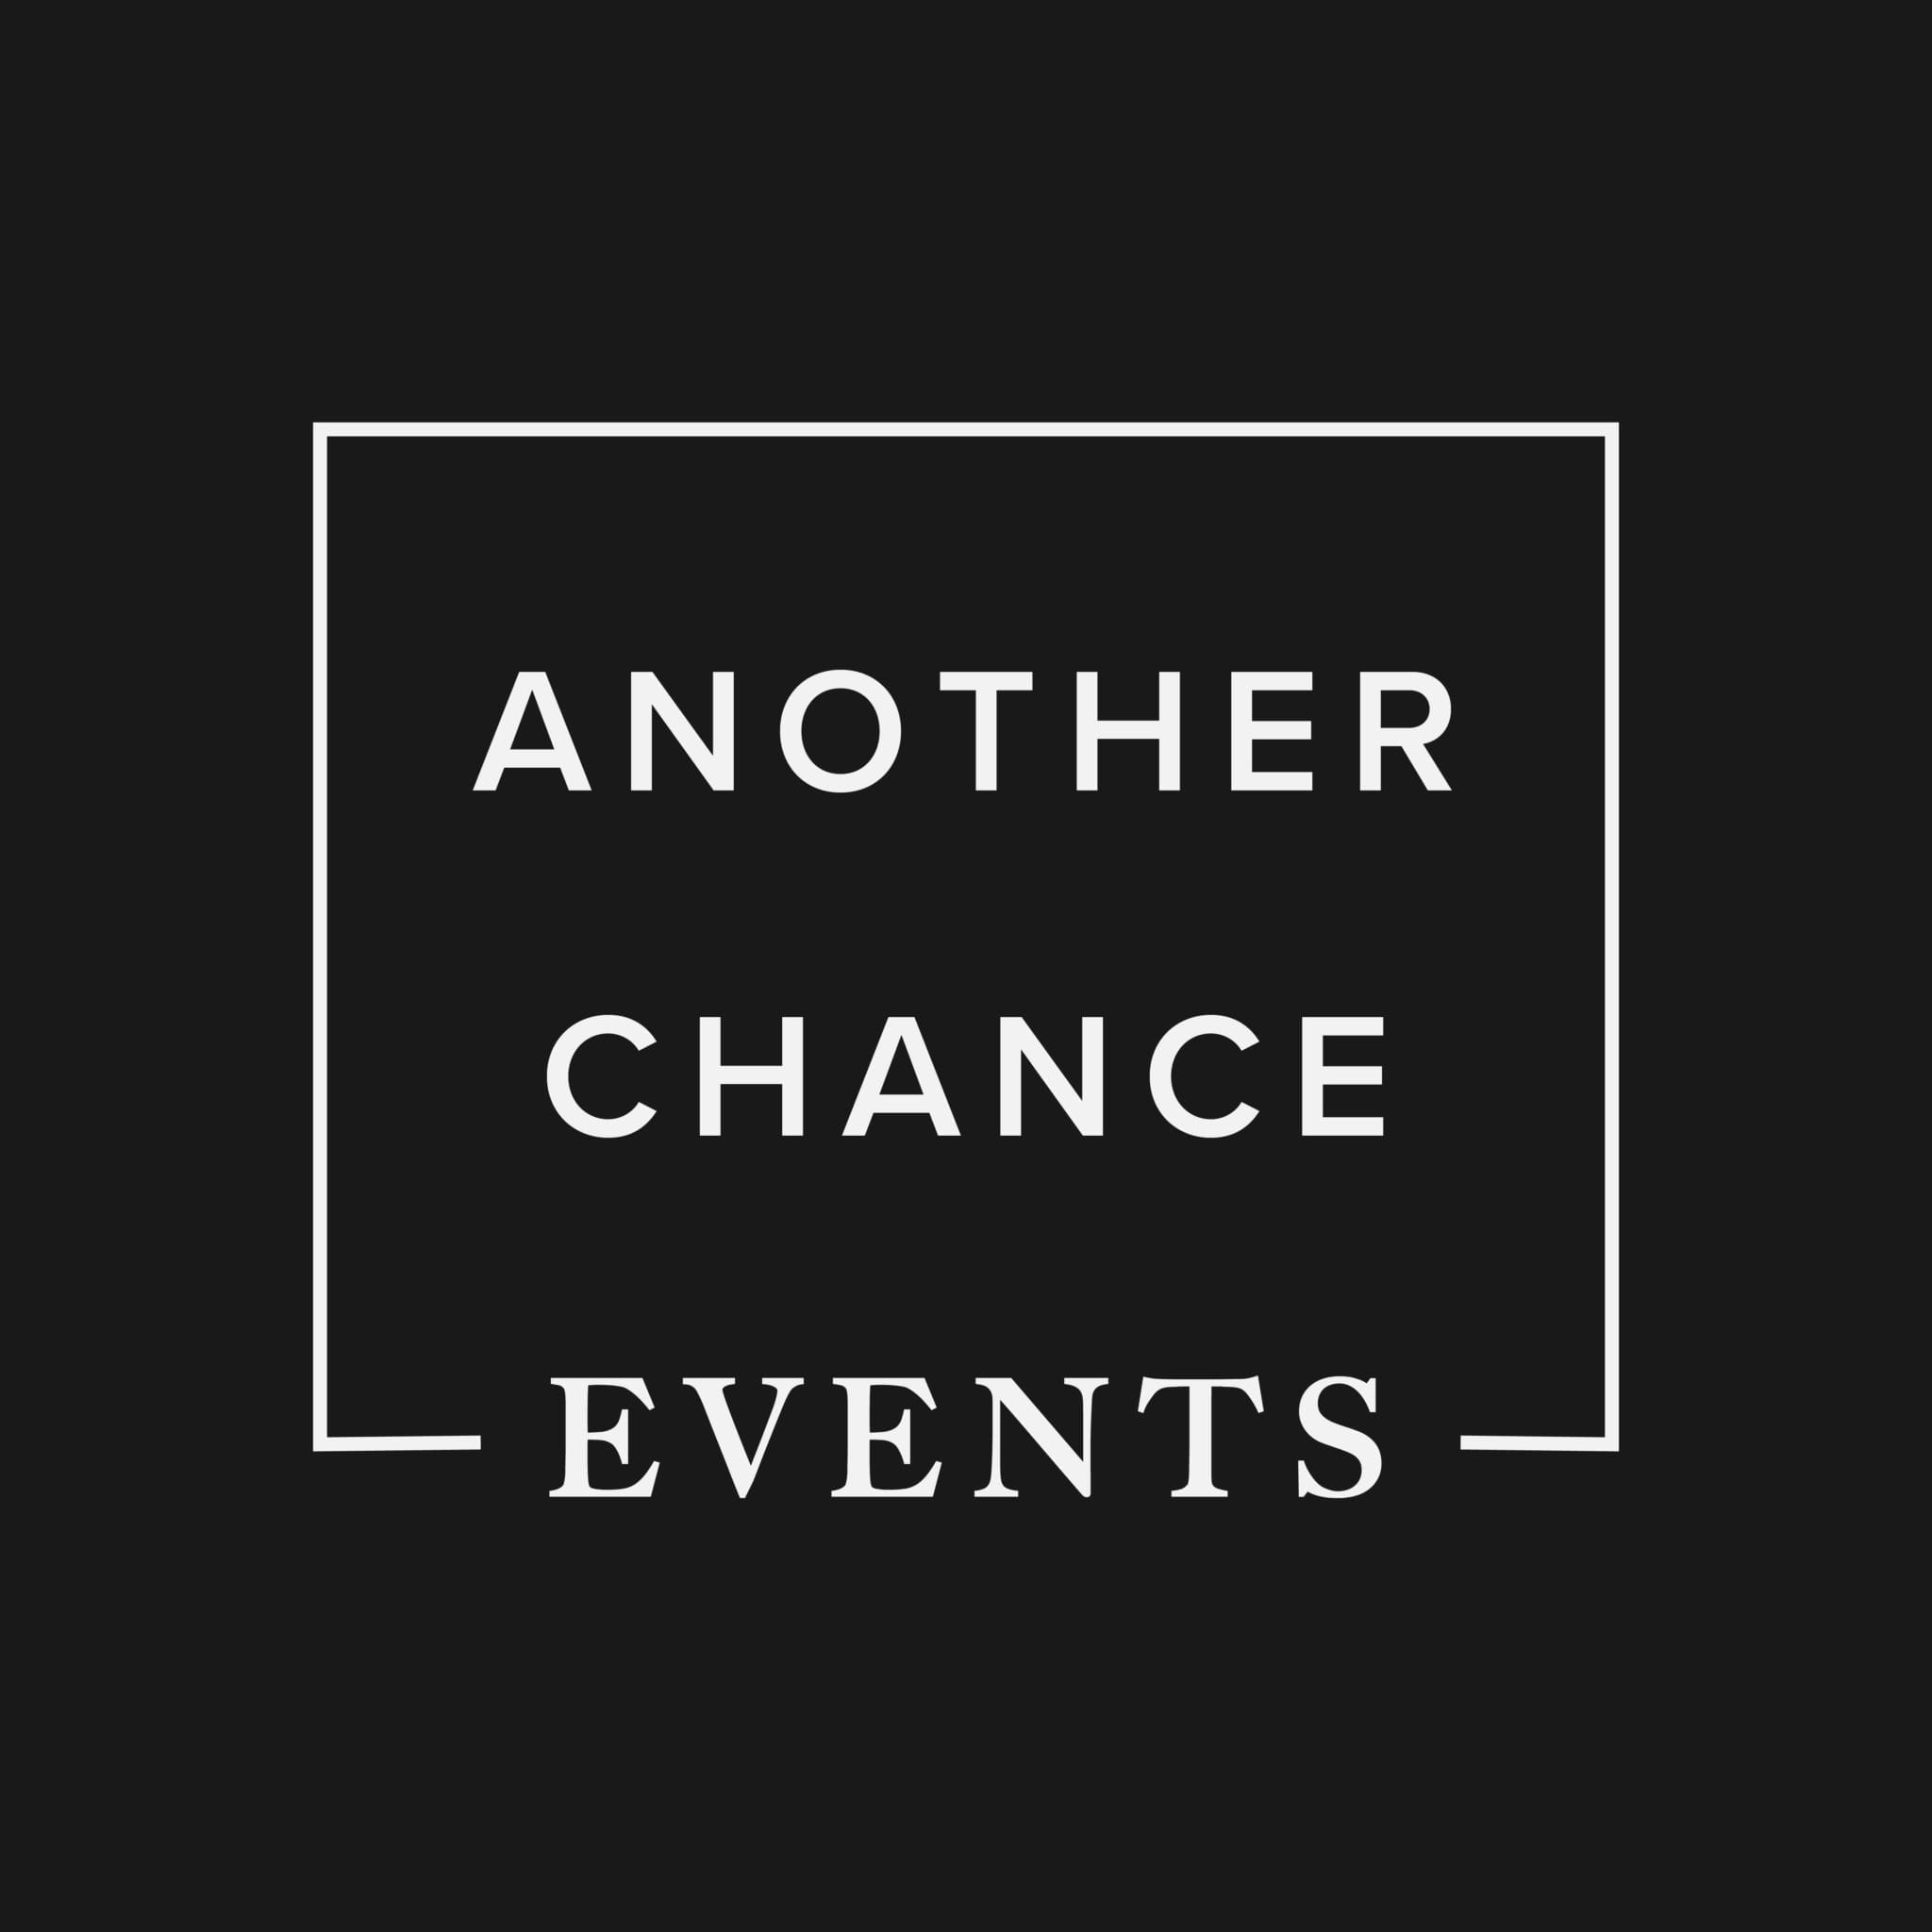 Another Chance Events